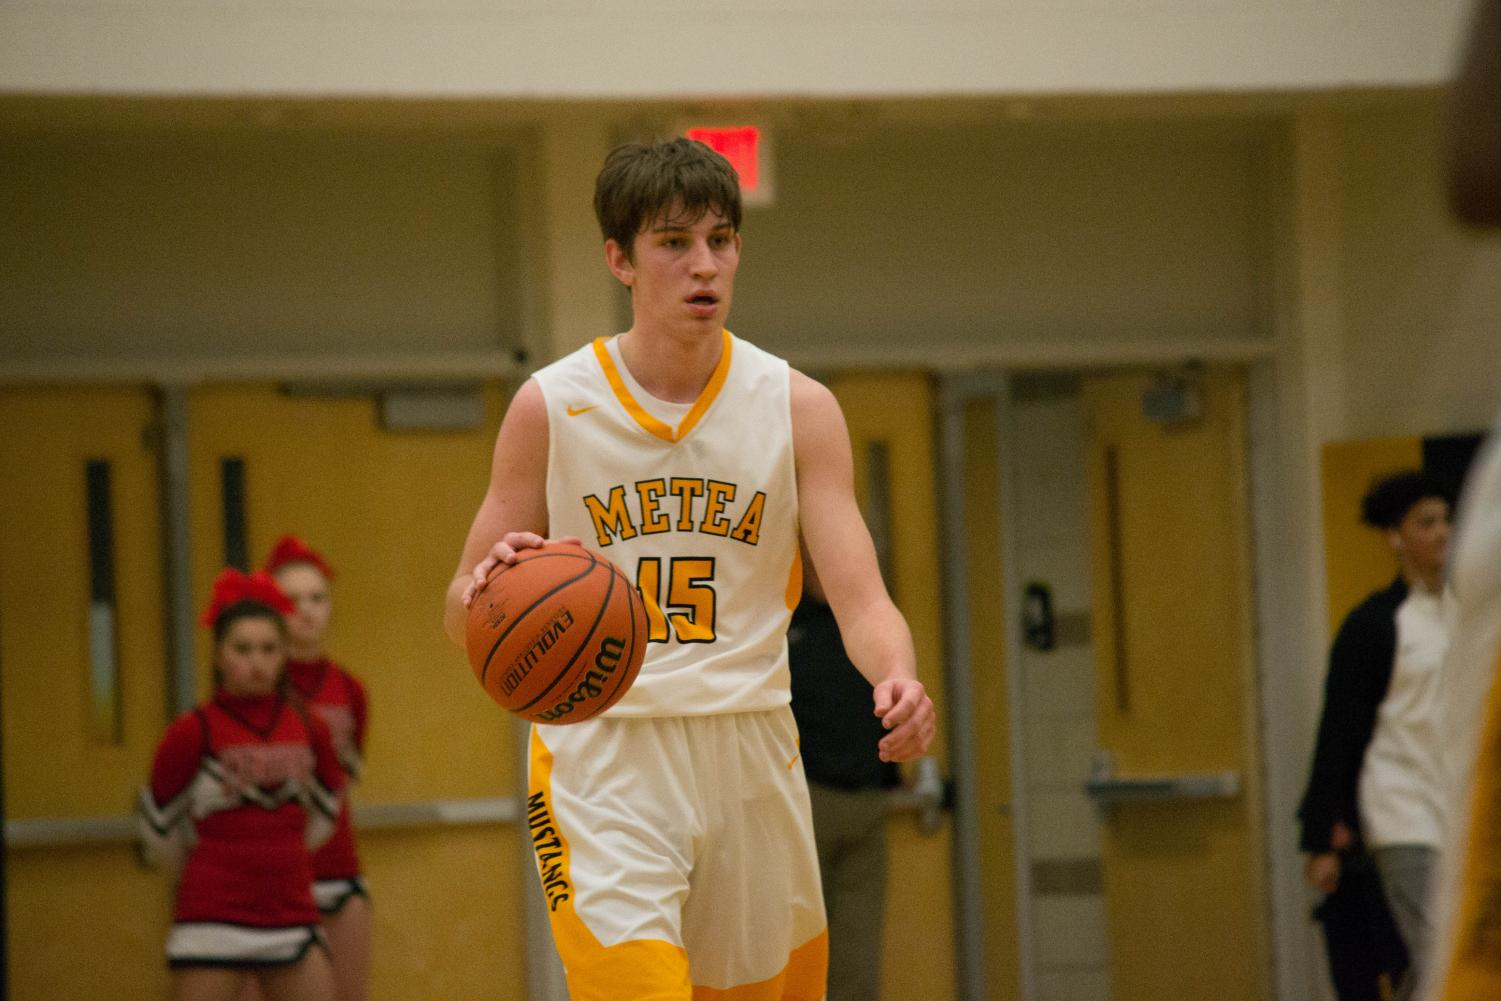 Senior Ethan Helwig scored 24 points during Friday's contest. He holds the school record for points in a game with 38.